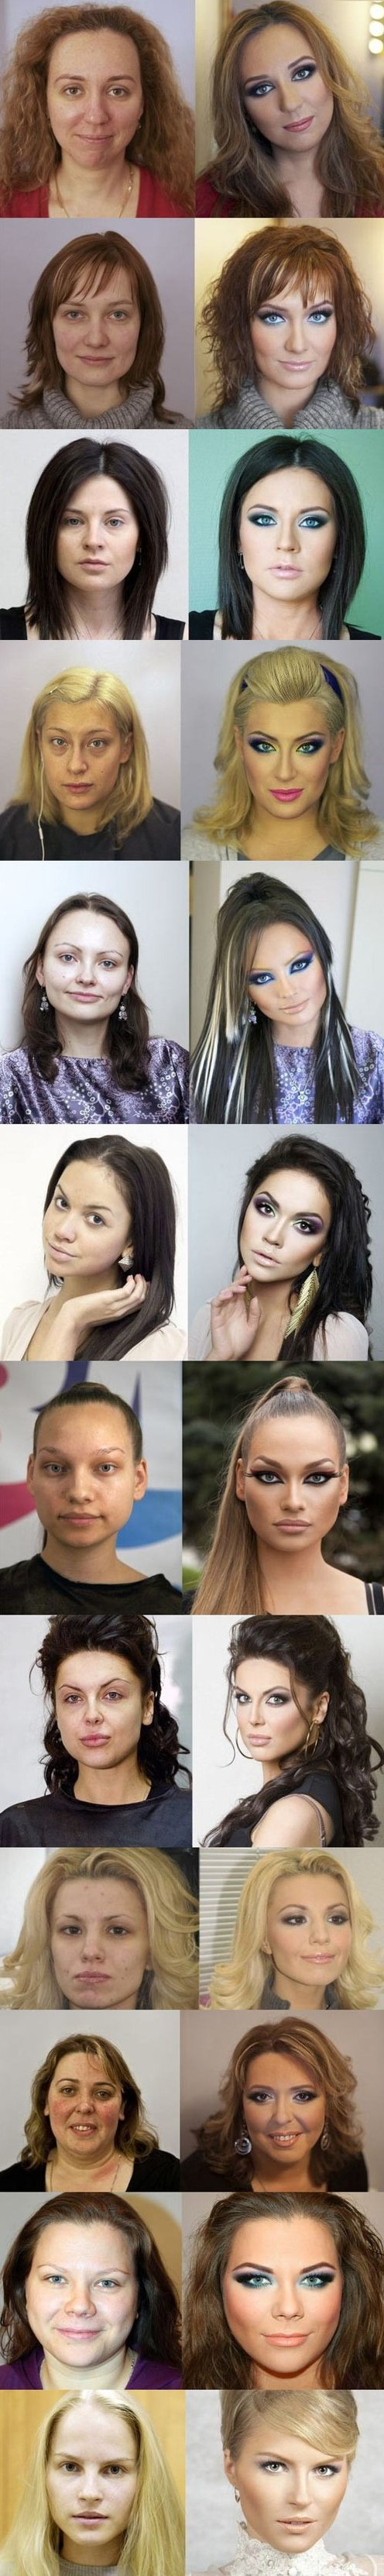 Russian Makeup, Before And After